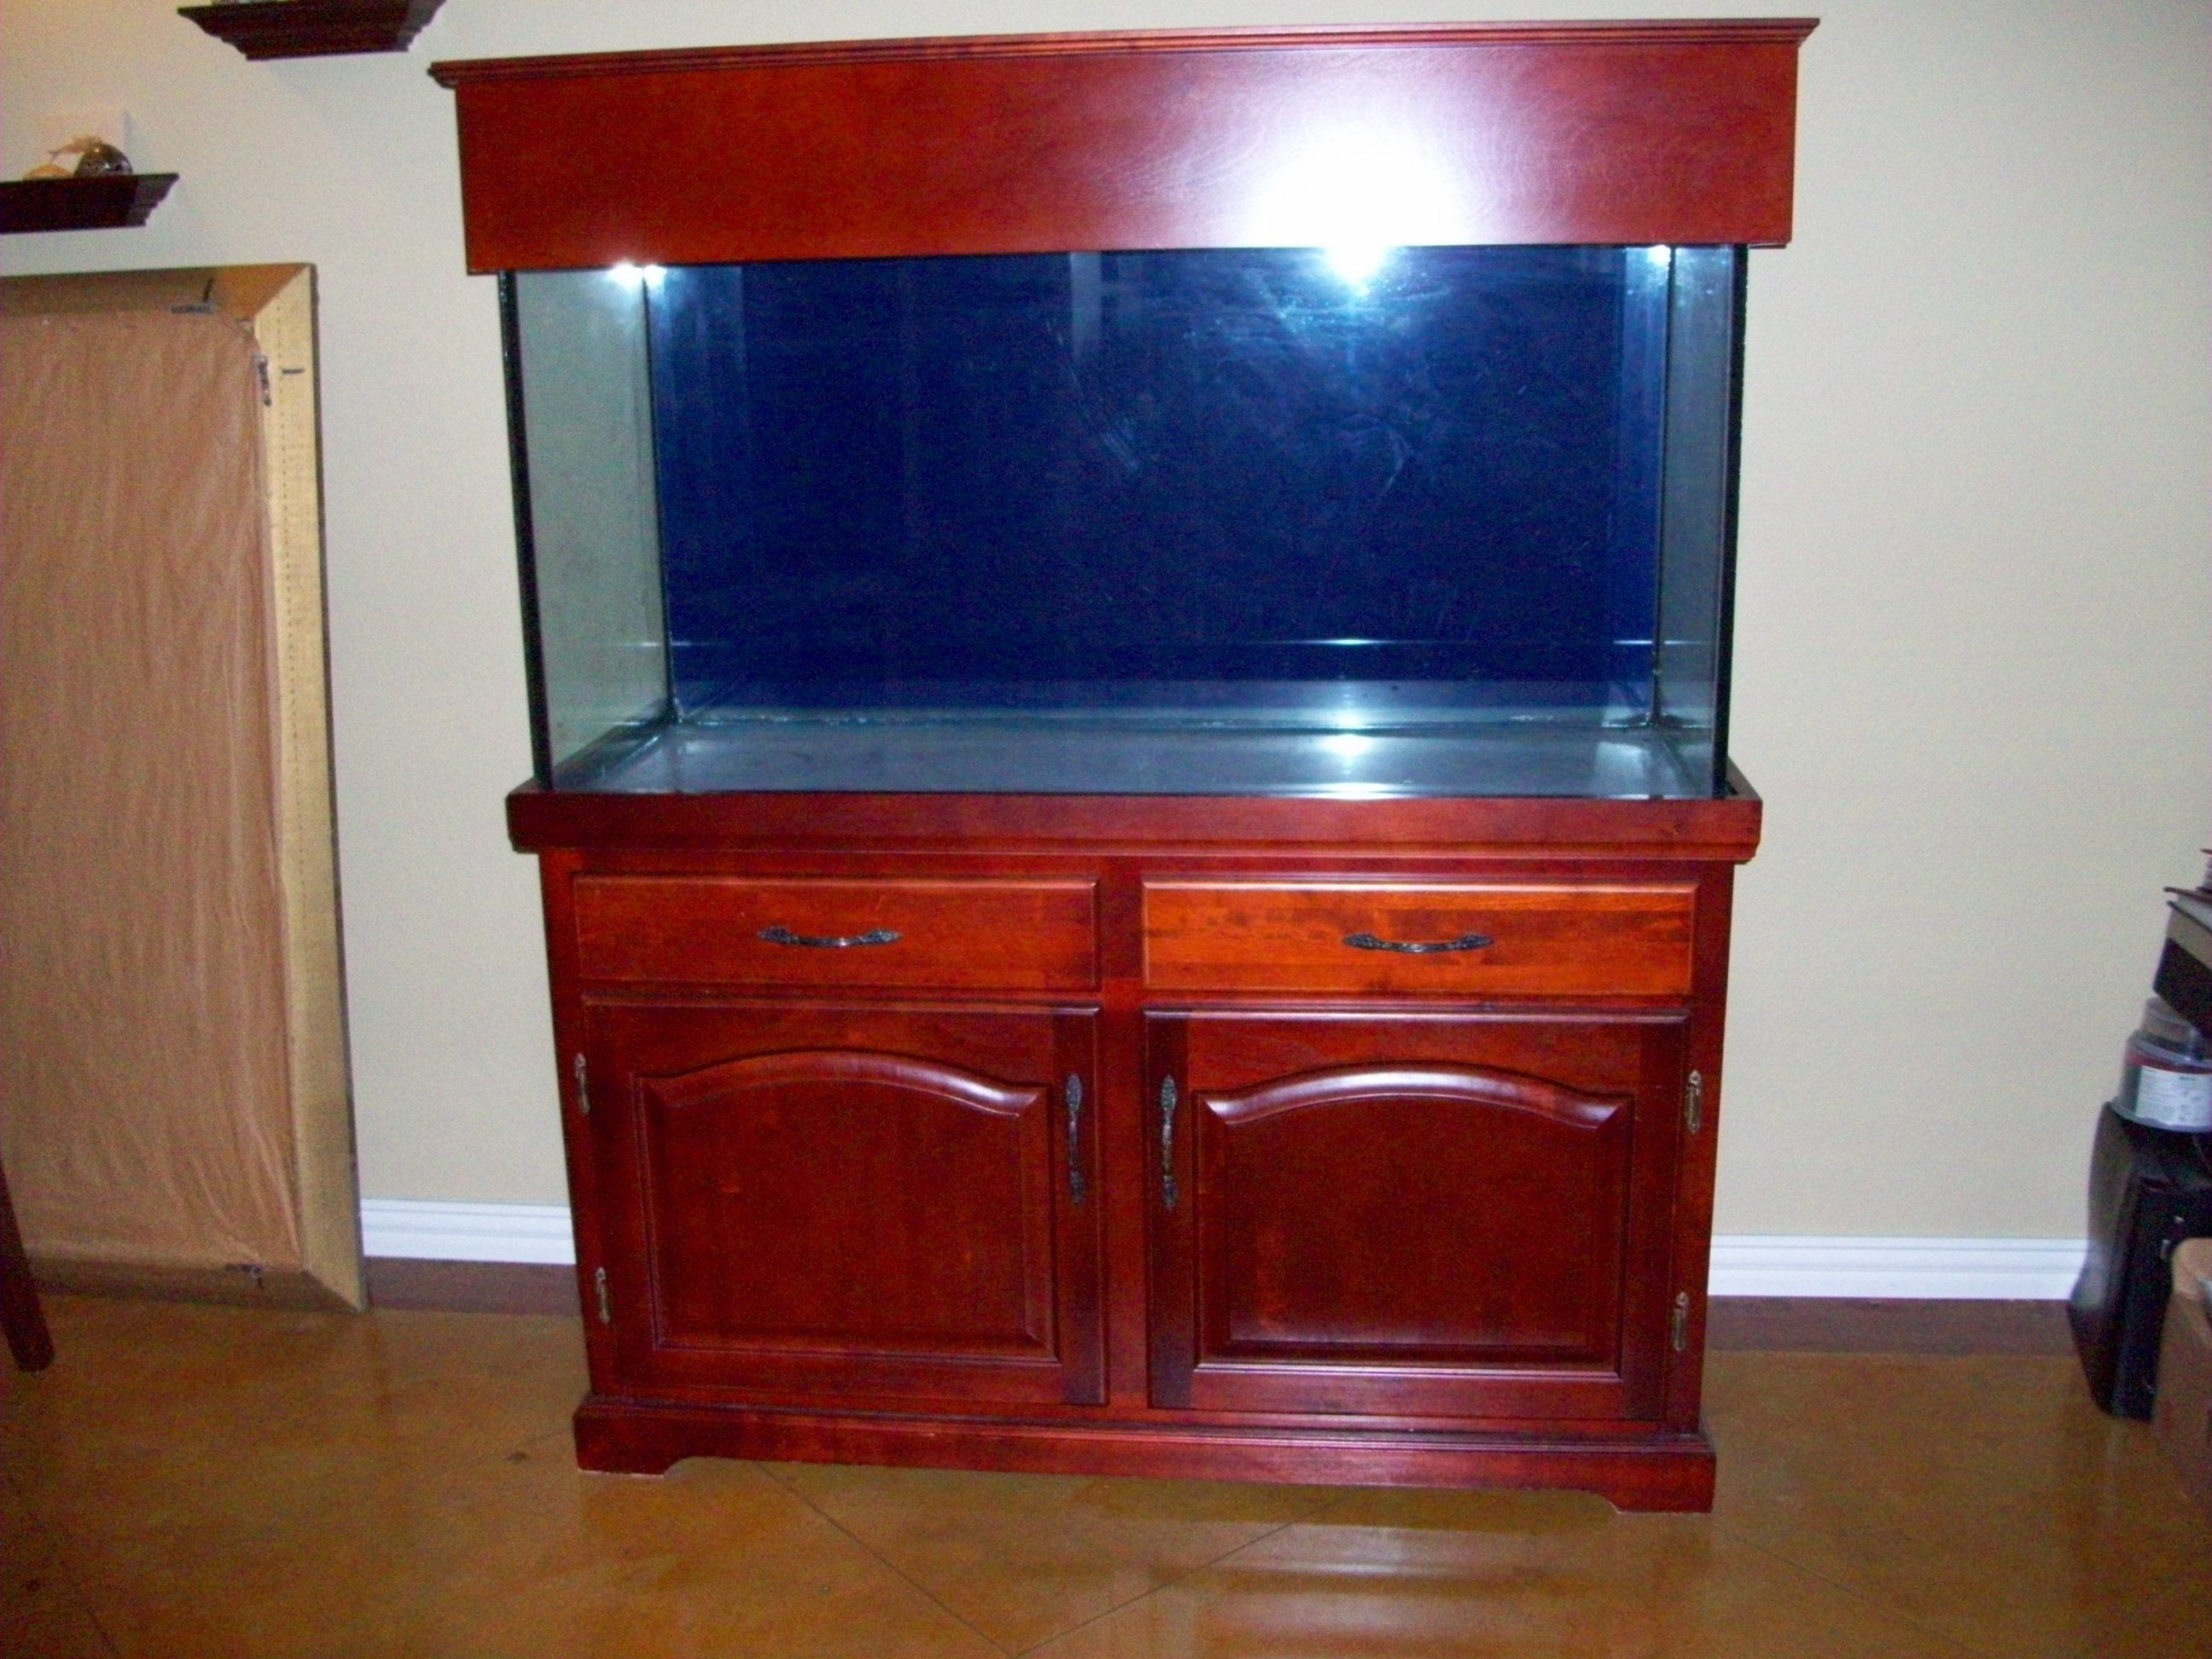 90 gallon aquarium with marineland stand canopy for 90 gallon fish tank stand